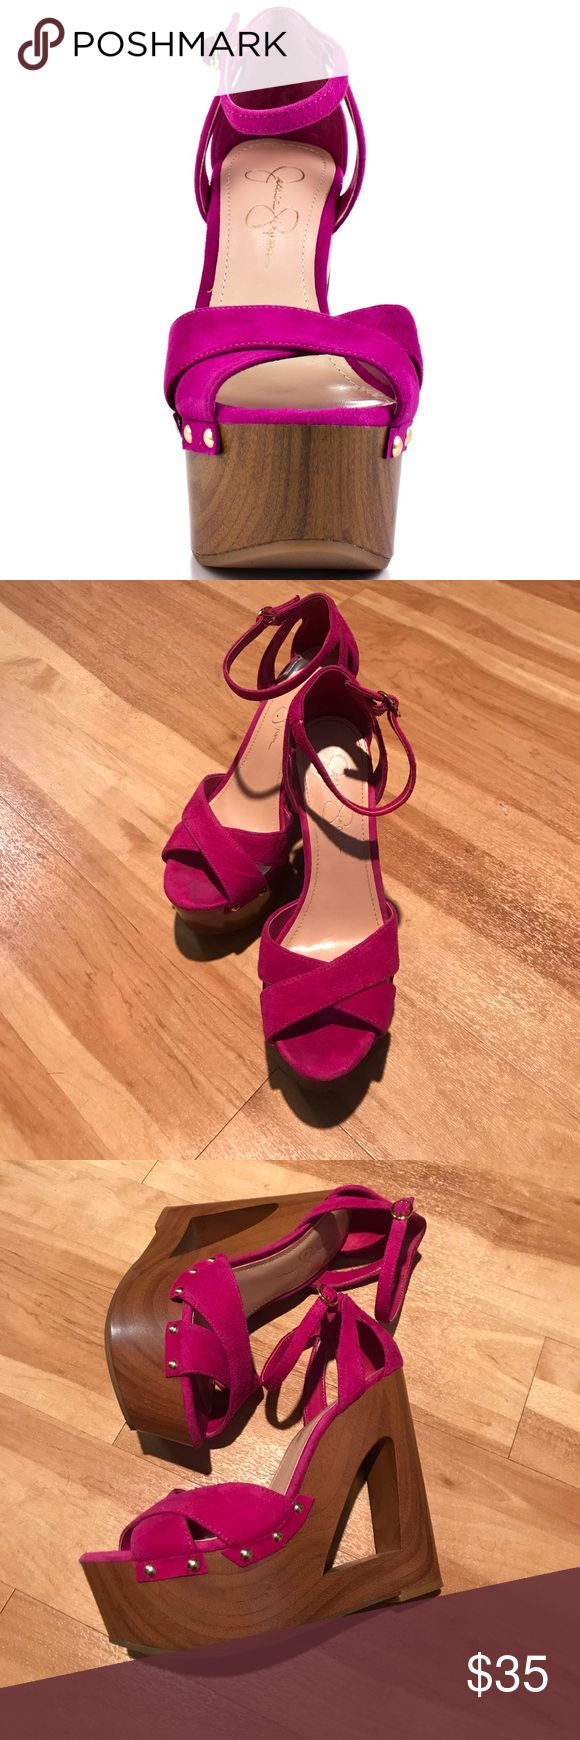 Jessica Simpson Hot Pink Wedges Size 7 Bright pink wedges by Jessica Simpson. Great with a pair of jeans or a fun summer dress! Size 7. No box. Jessica Simpson Shoes Wedges